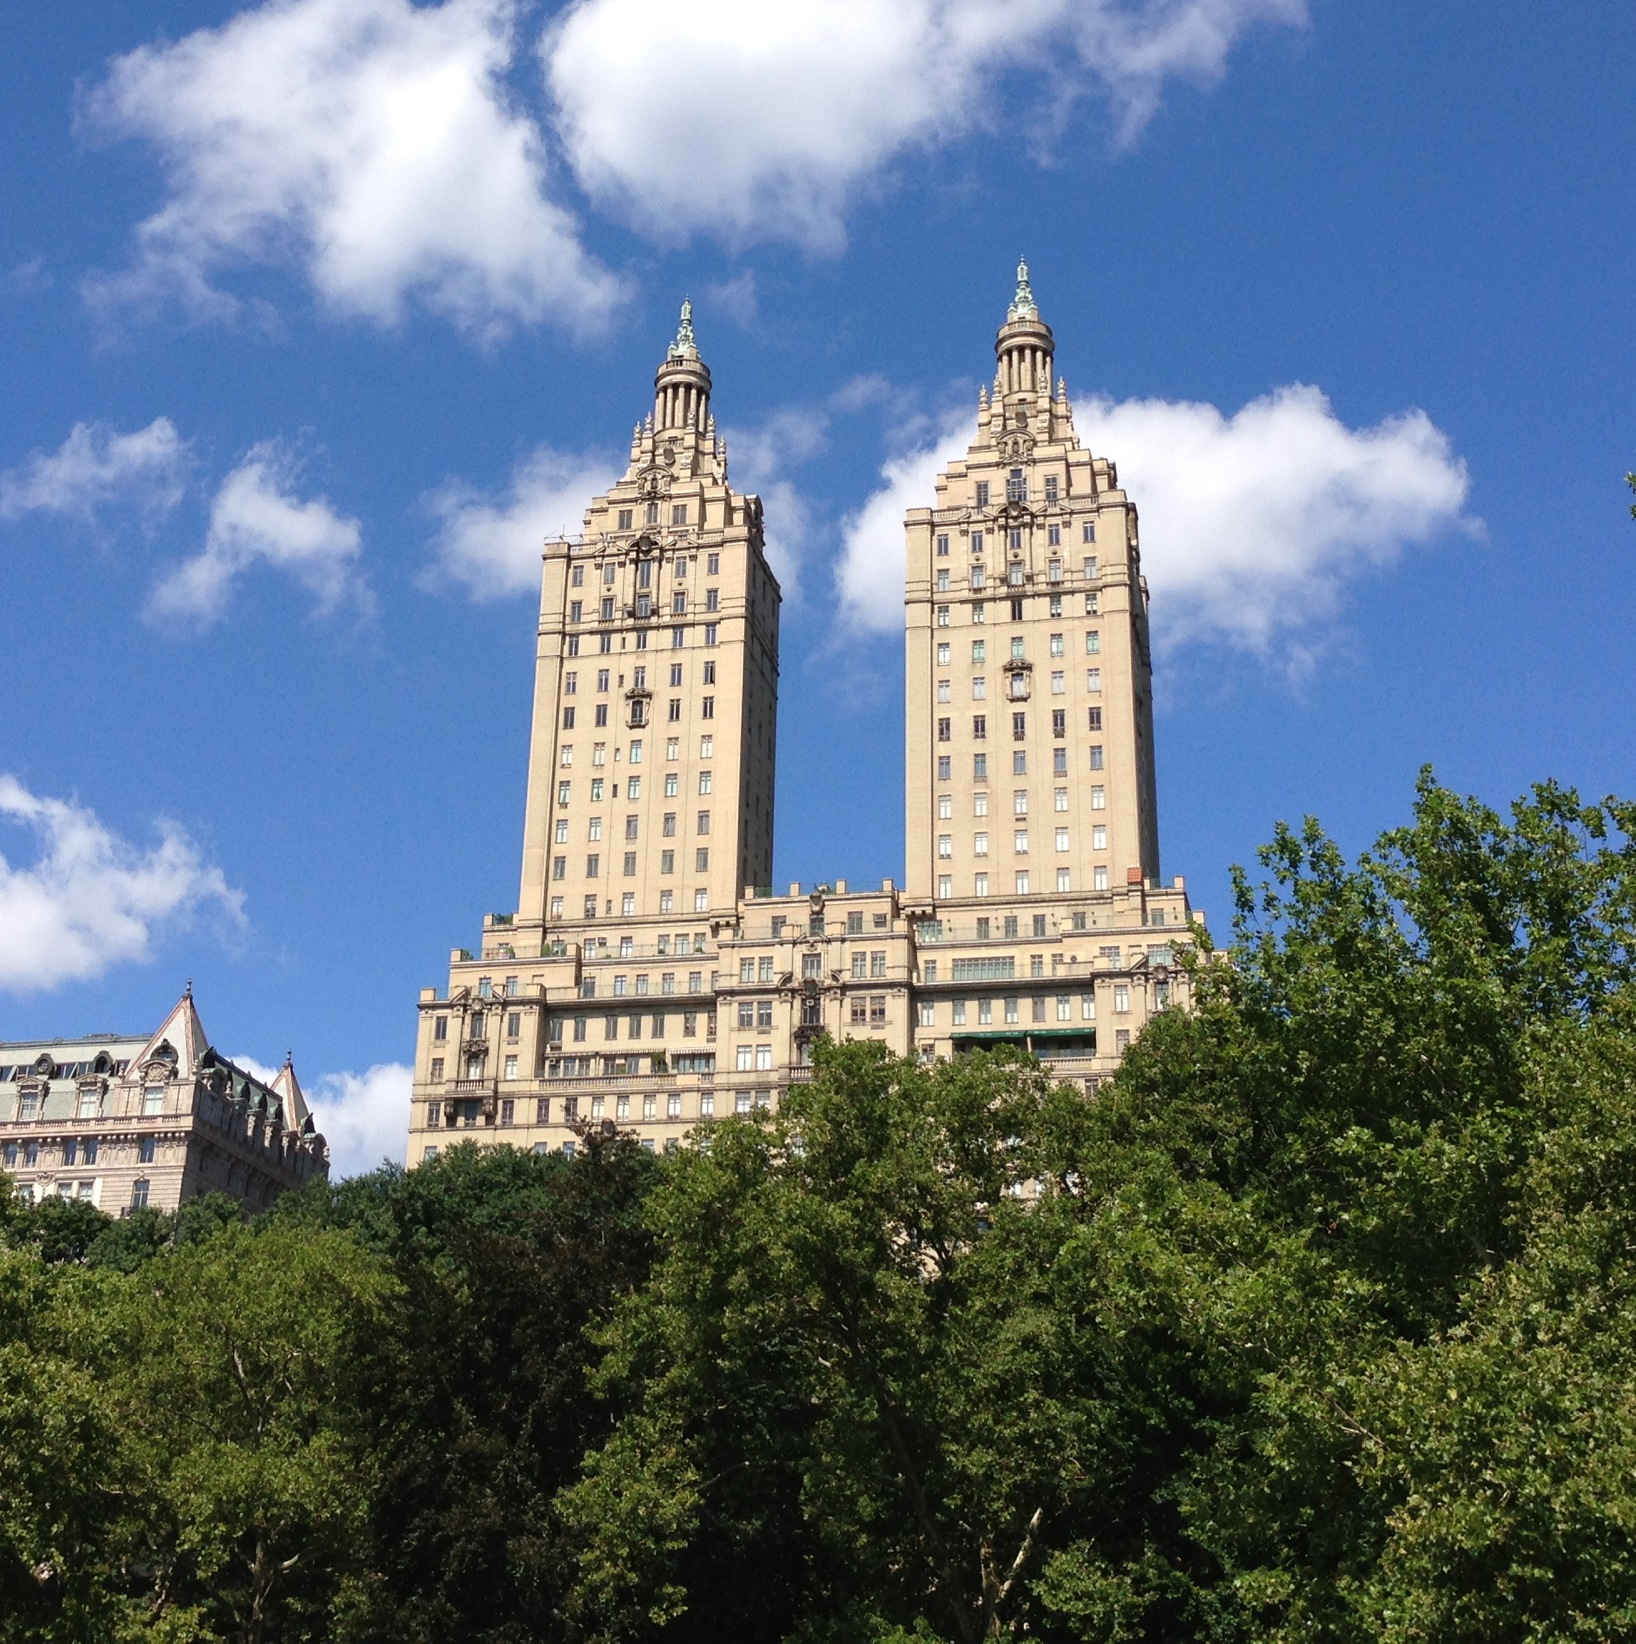 The San Remo Towers